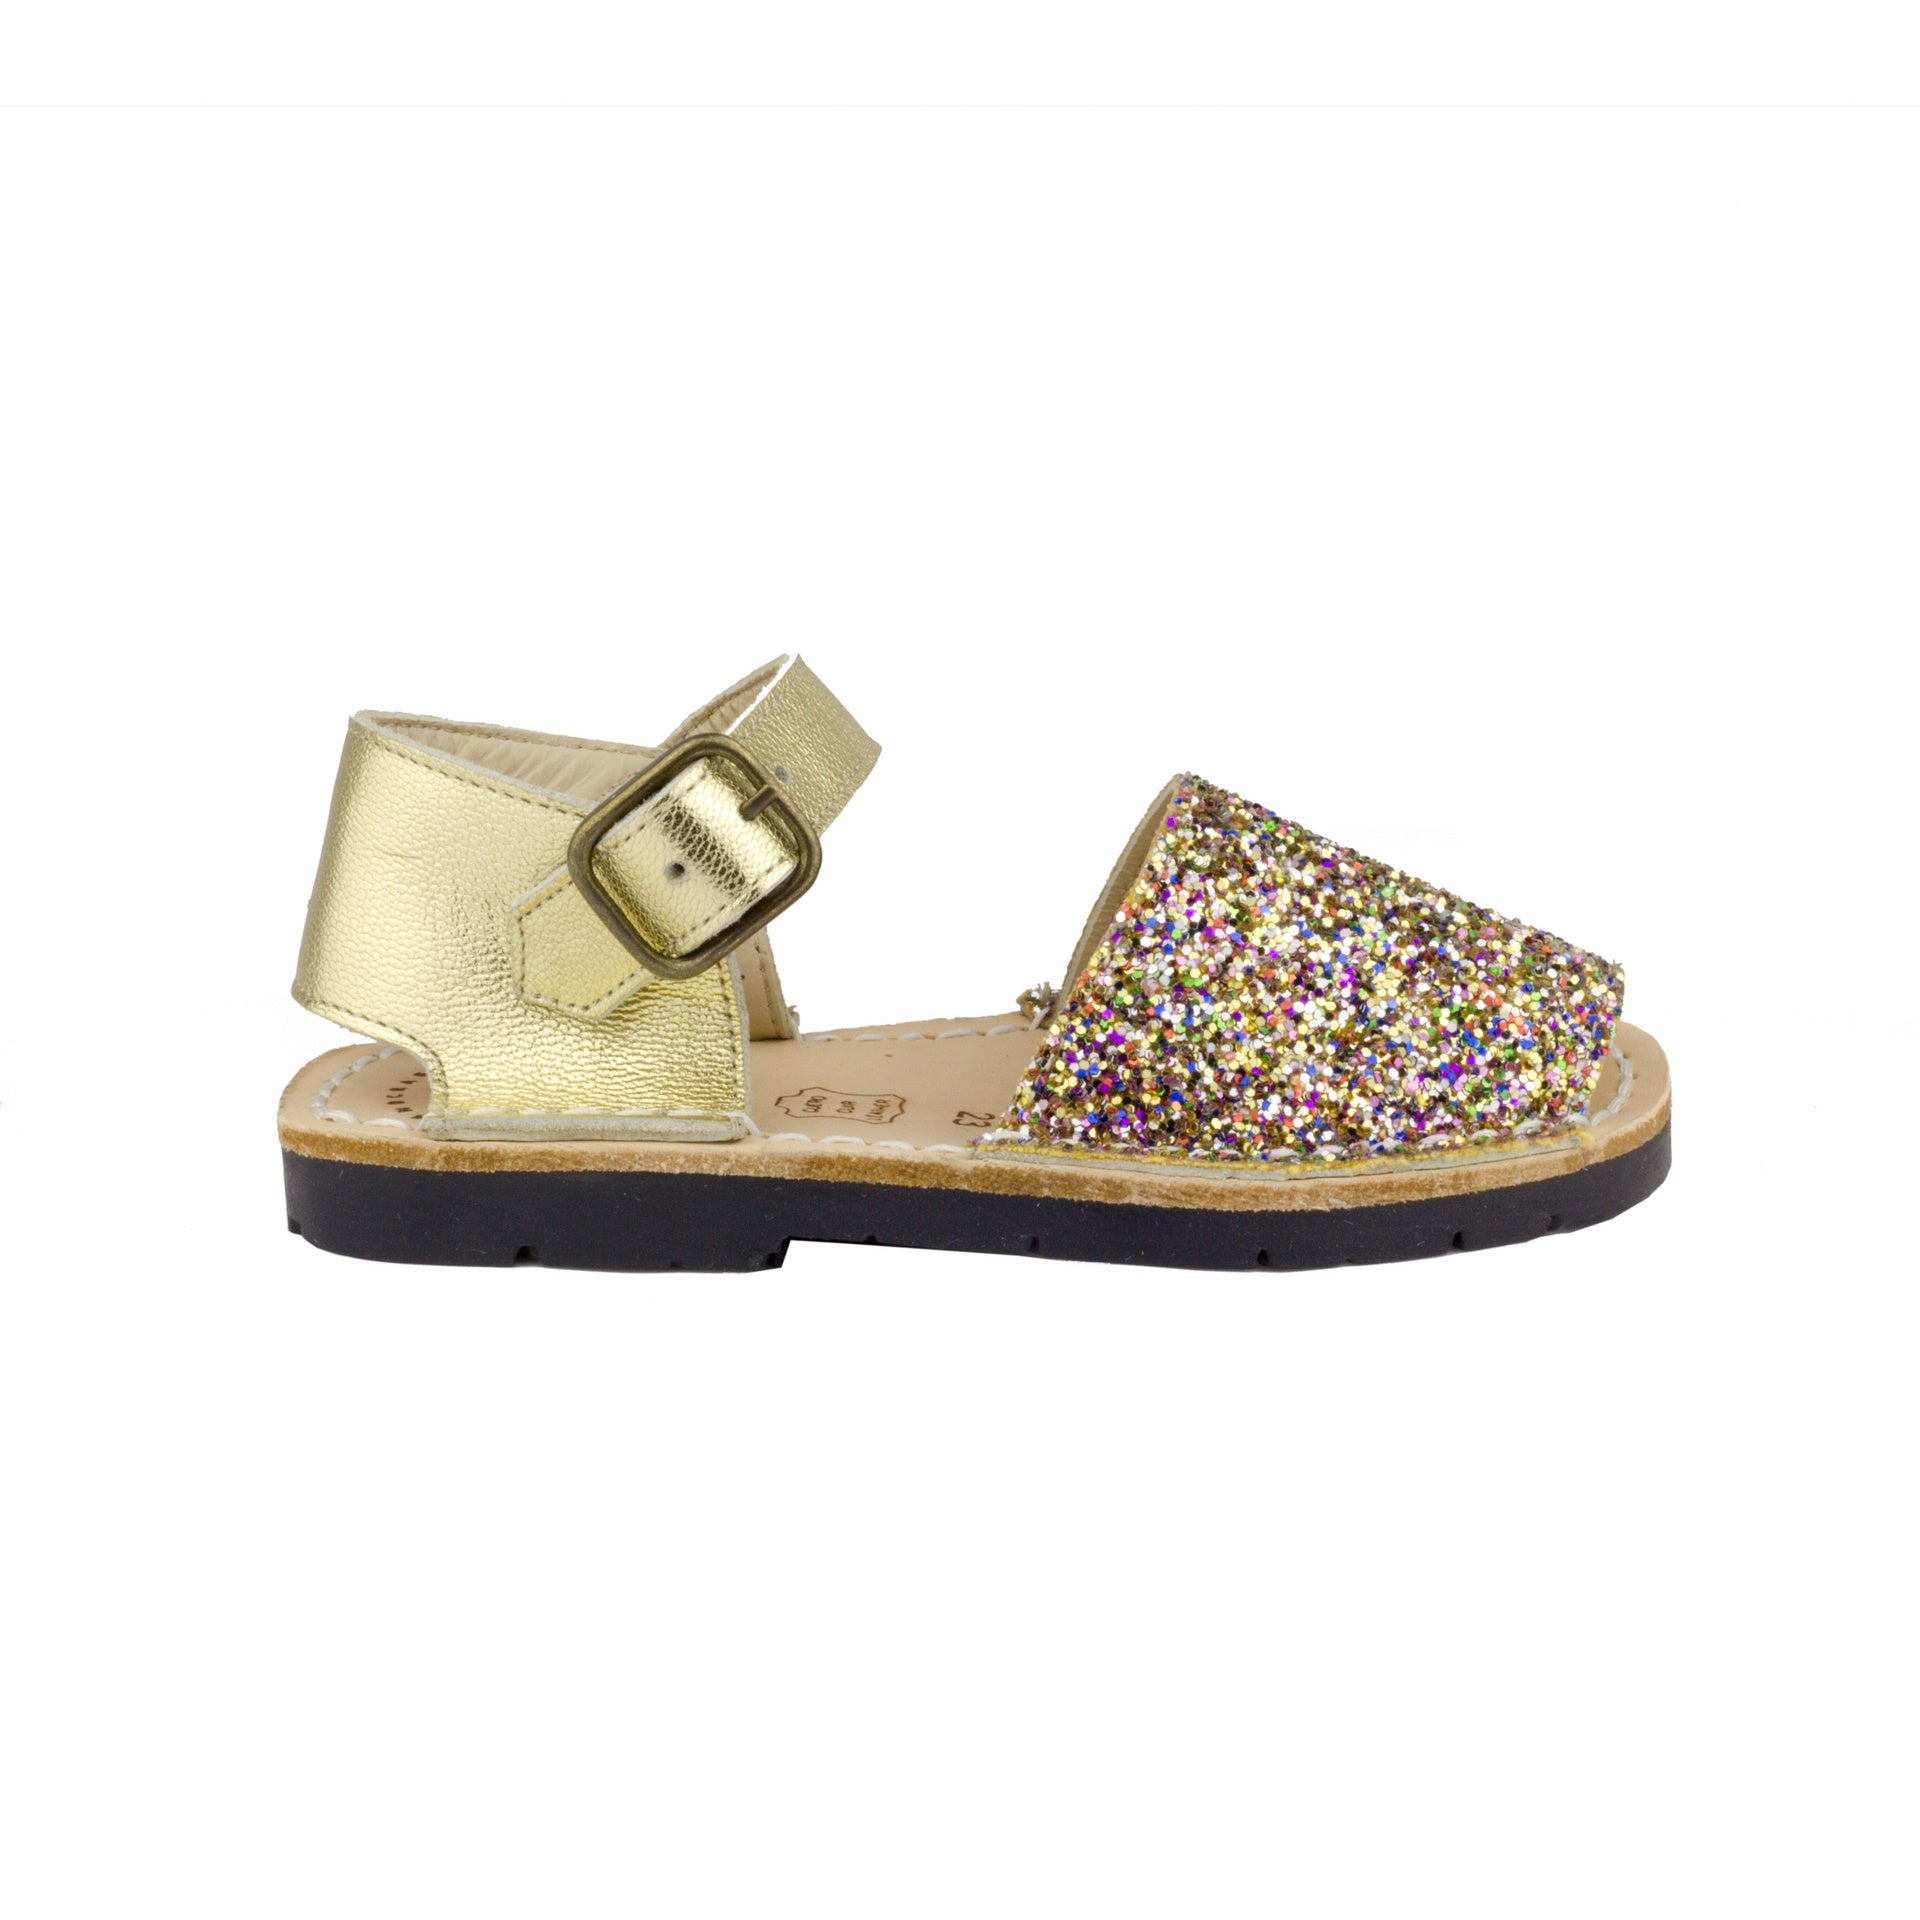 Kid's Multi Glitter Mibo Avarca Sandals with Buckle Strap